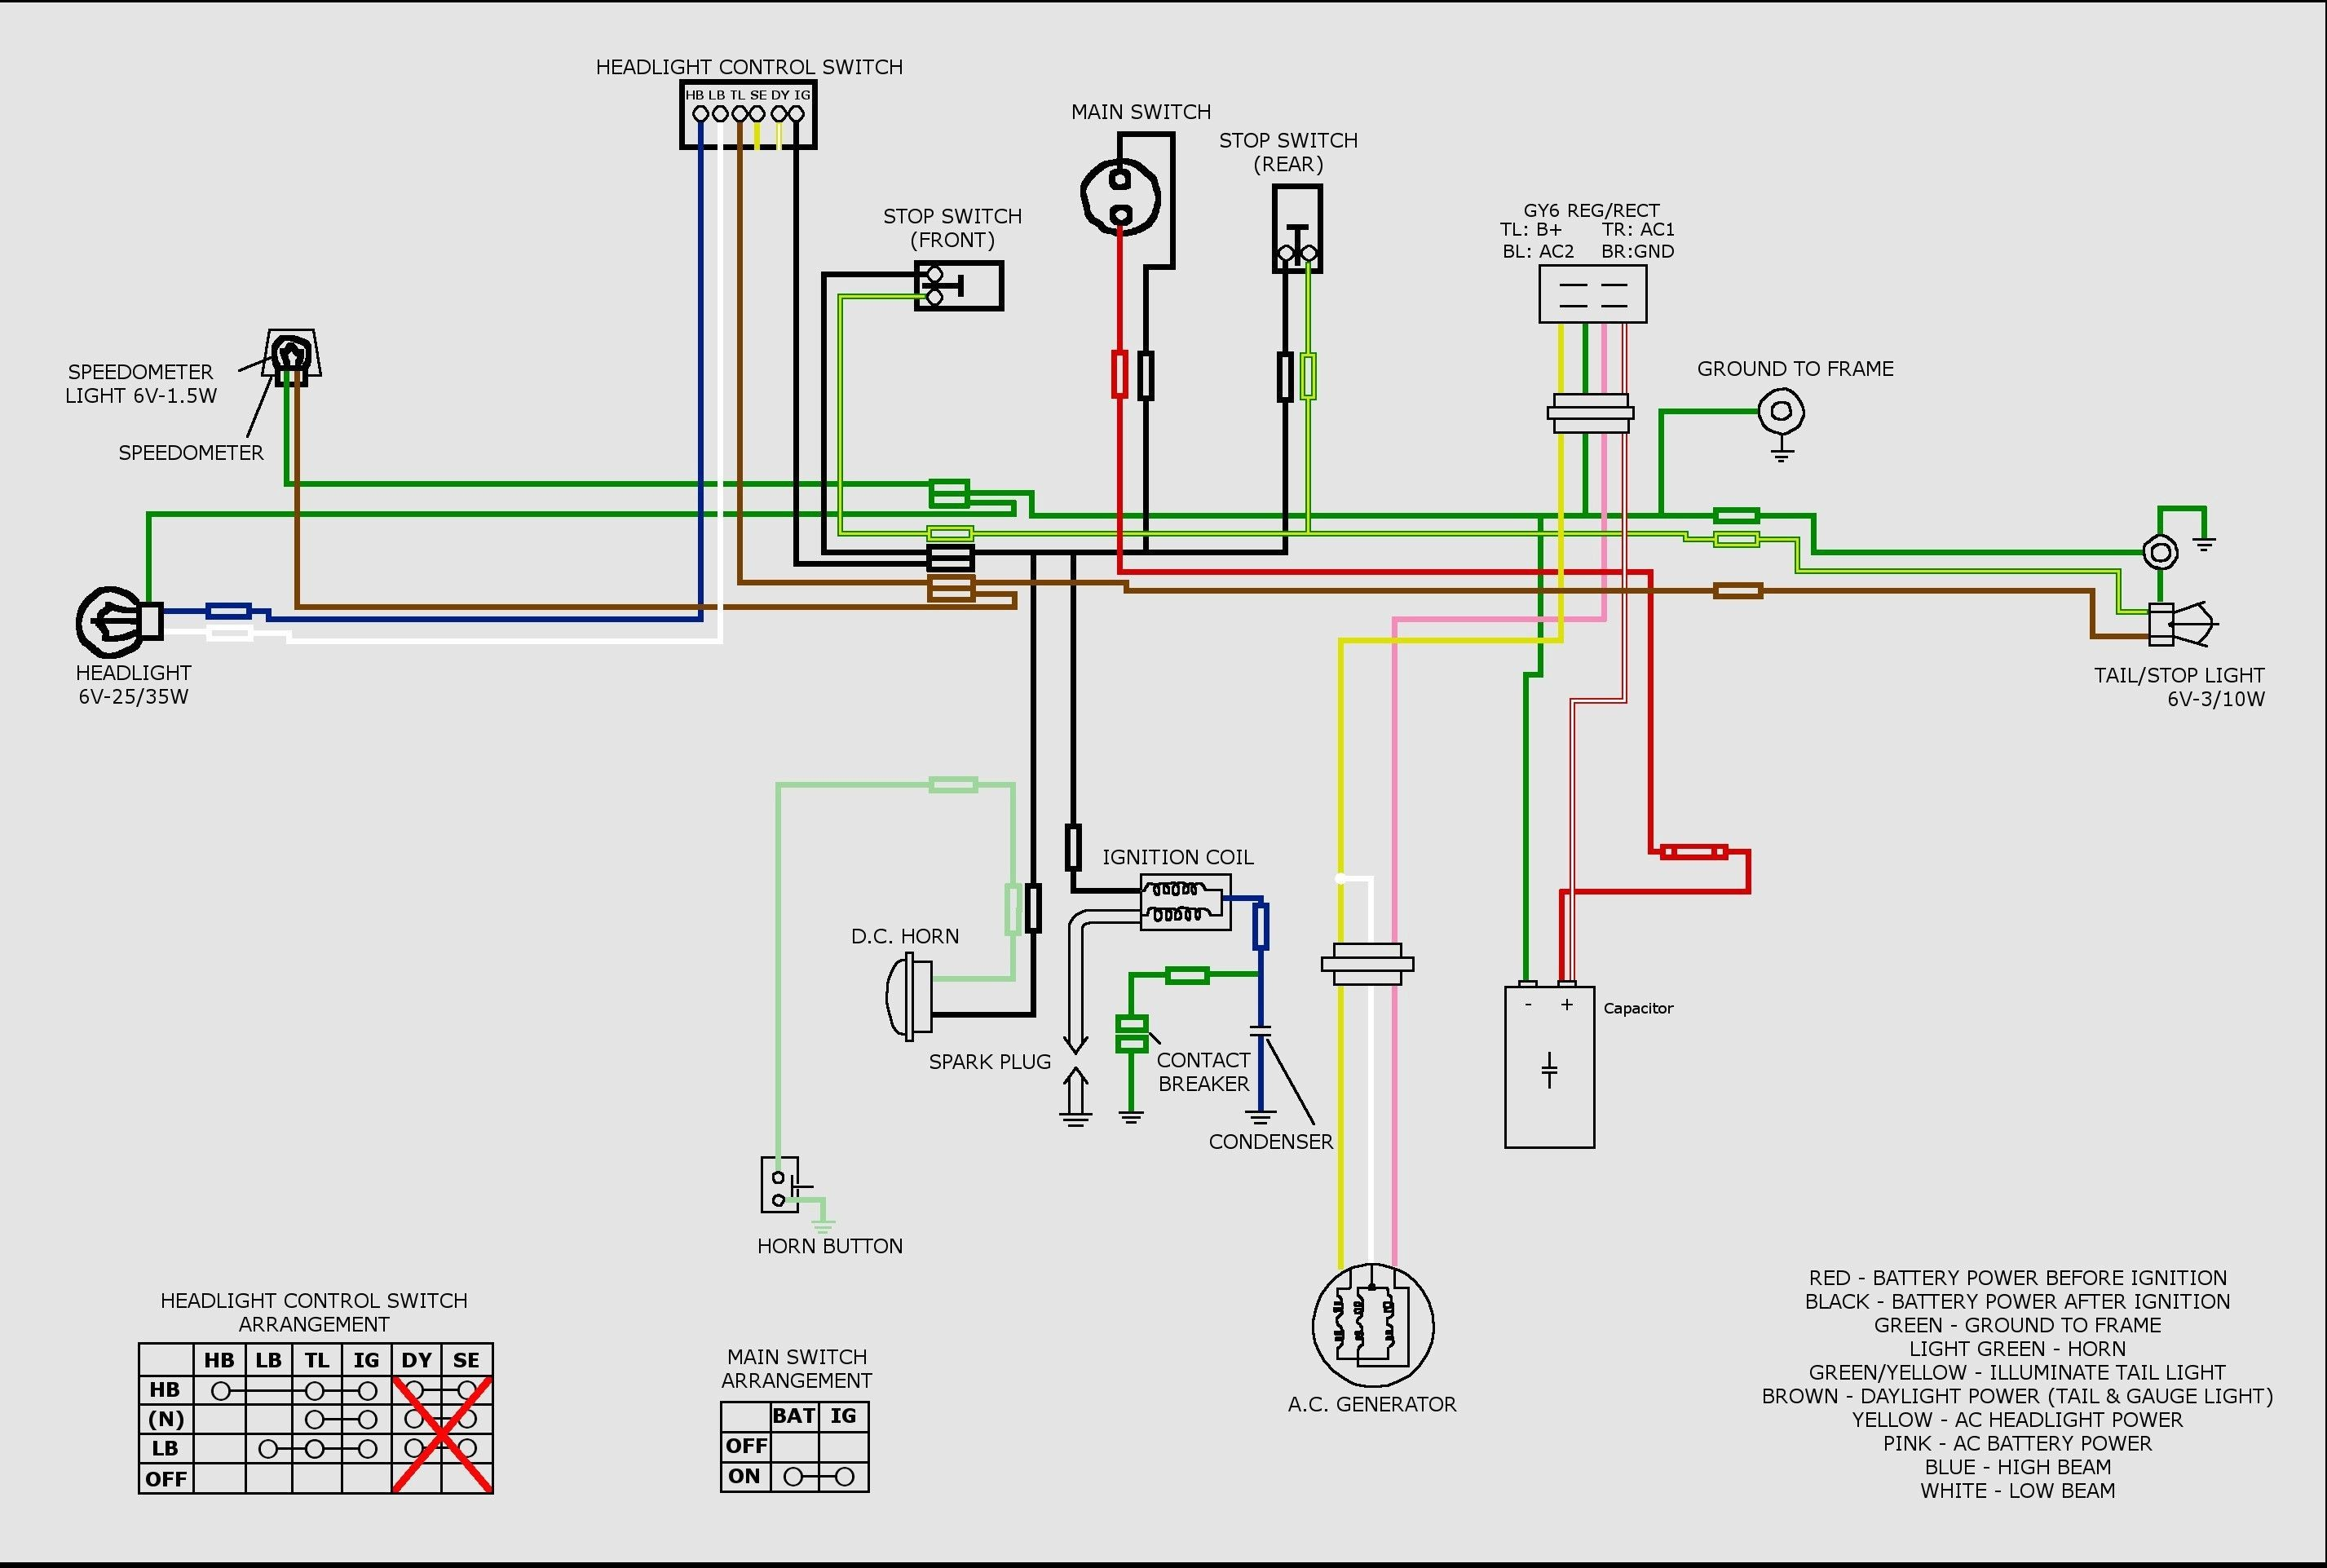 Atv Wire Diagram for Winch Motor Gy6 Wiring Diagram Awesome 150cc Gy6 Wiring Diagram within Of Atv Wire Diagram for Winch Motor